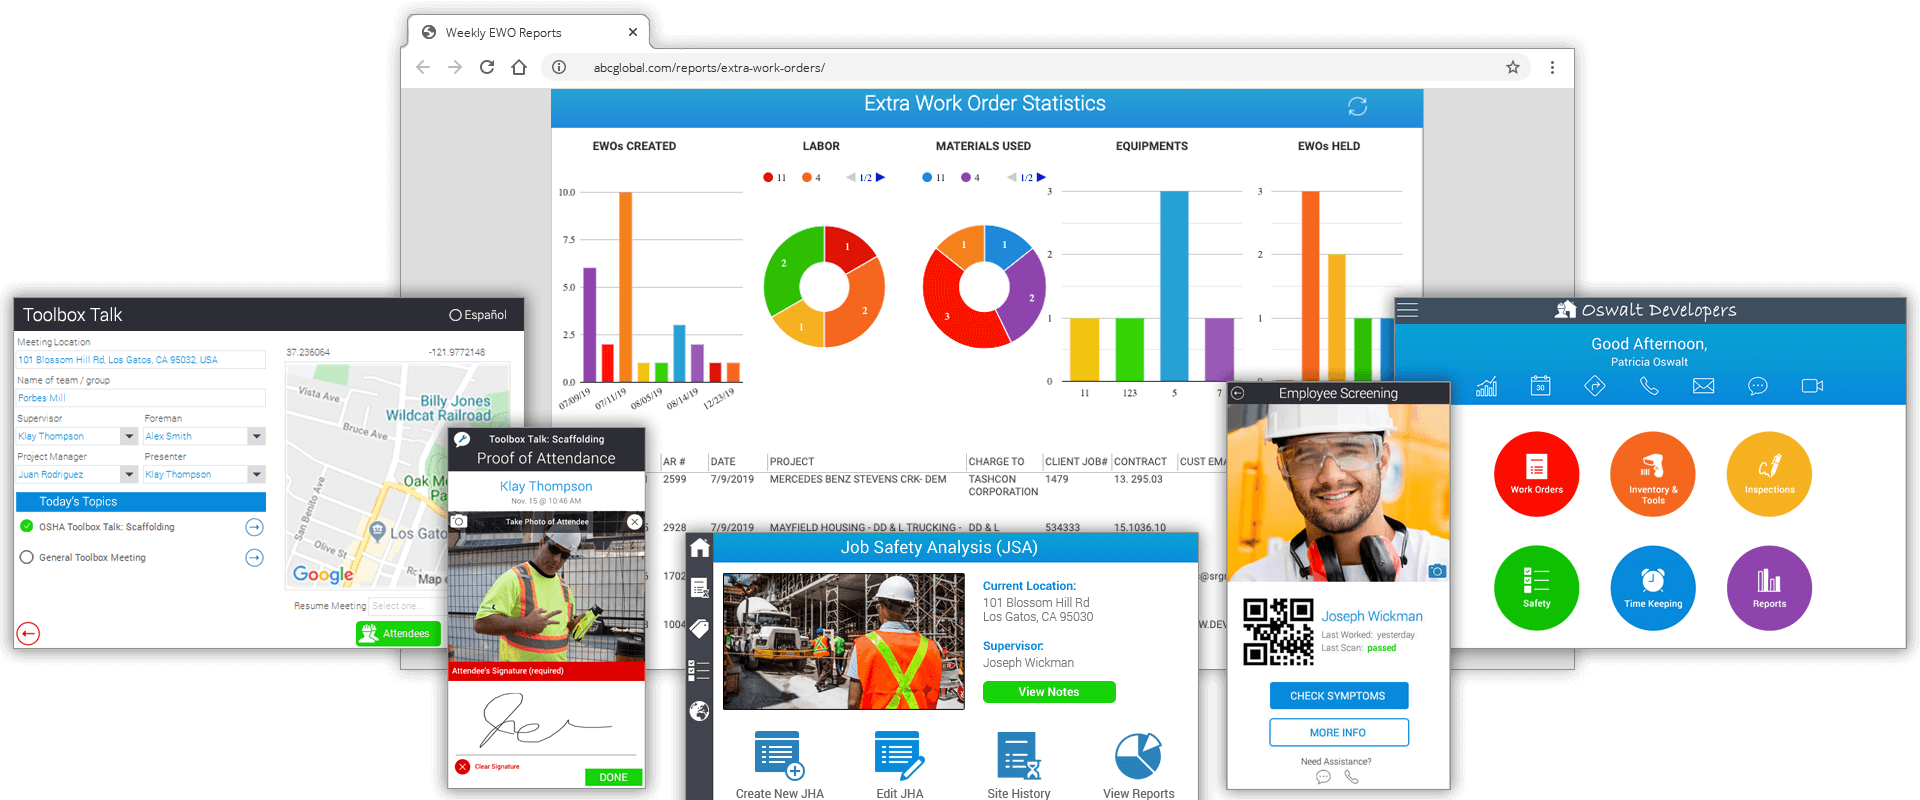 Toolbox Talk App & Other App Screenshots